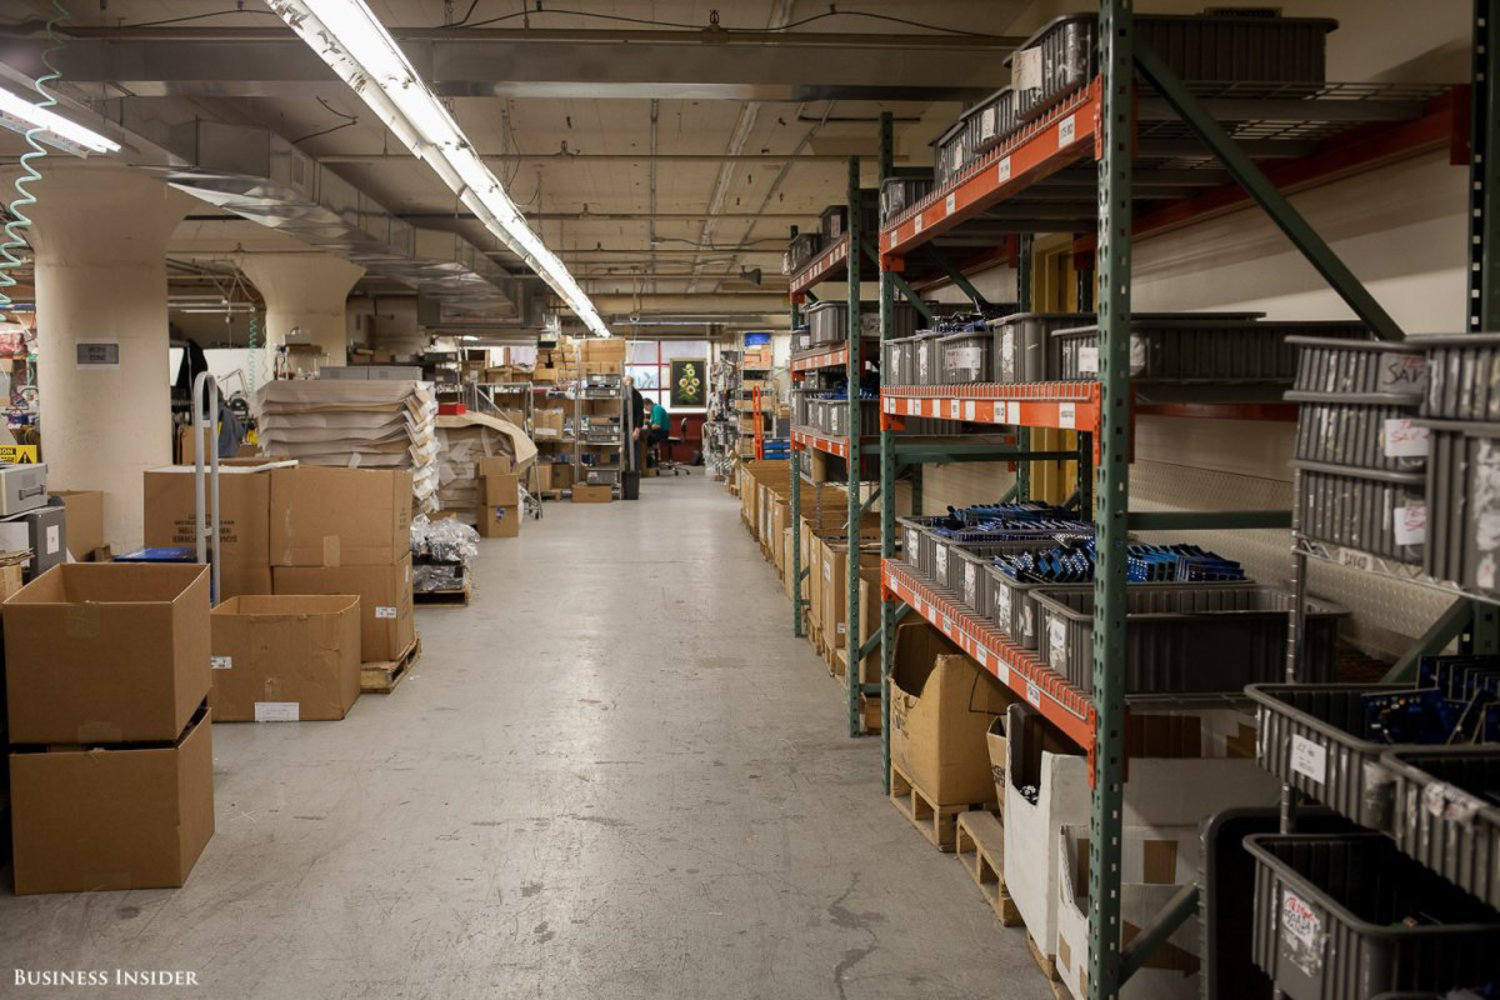 One of the first businesses we visited was Altronix, a company that manufactures electronics for schools, hospitals, and transportation hubs. The company started in a 12,000-square-foot space. It is now in a 125,000-square-foot space and employs 300 people.